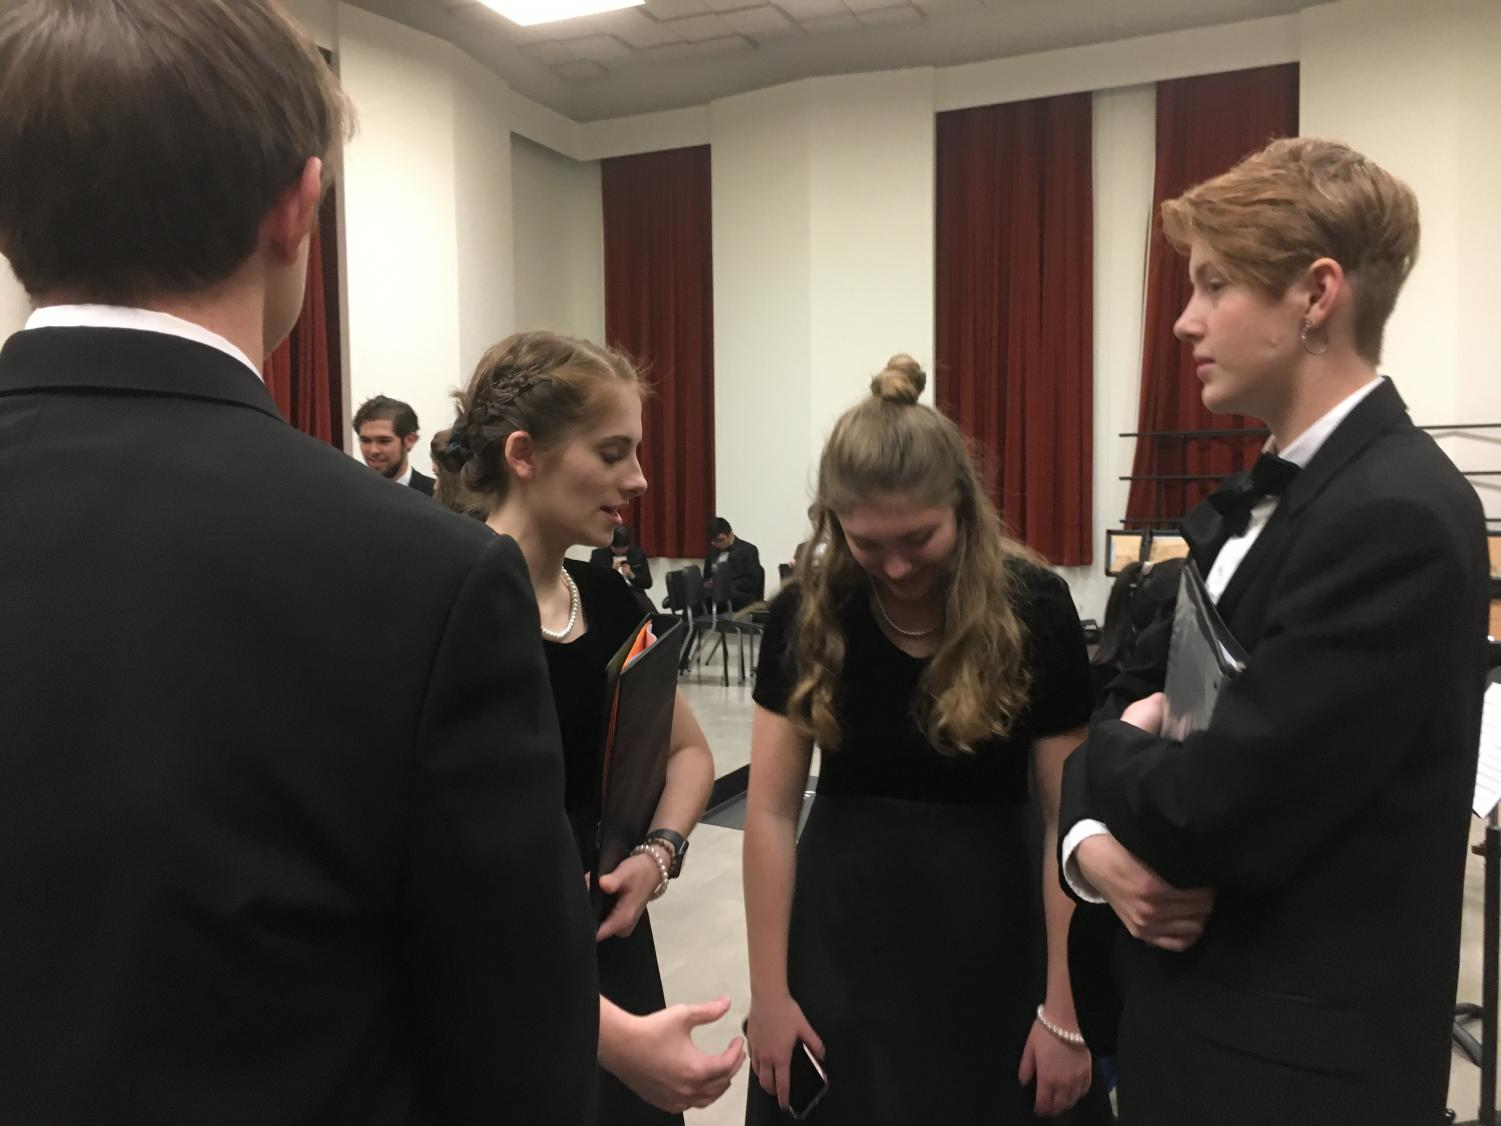 Choir+students+chat+before+preparing+to+go+onstage.++Before+the+performance%2C+they+were+able+to+rehearse+in+UT%27s+choir+room.